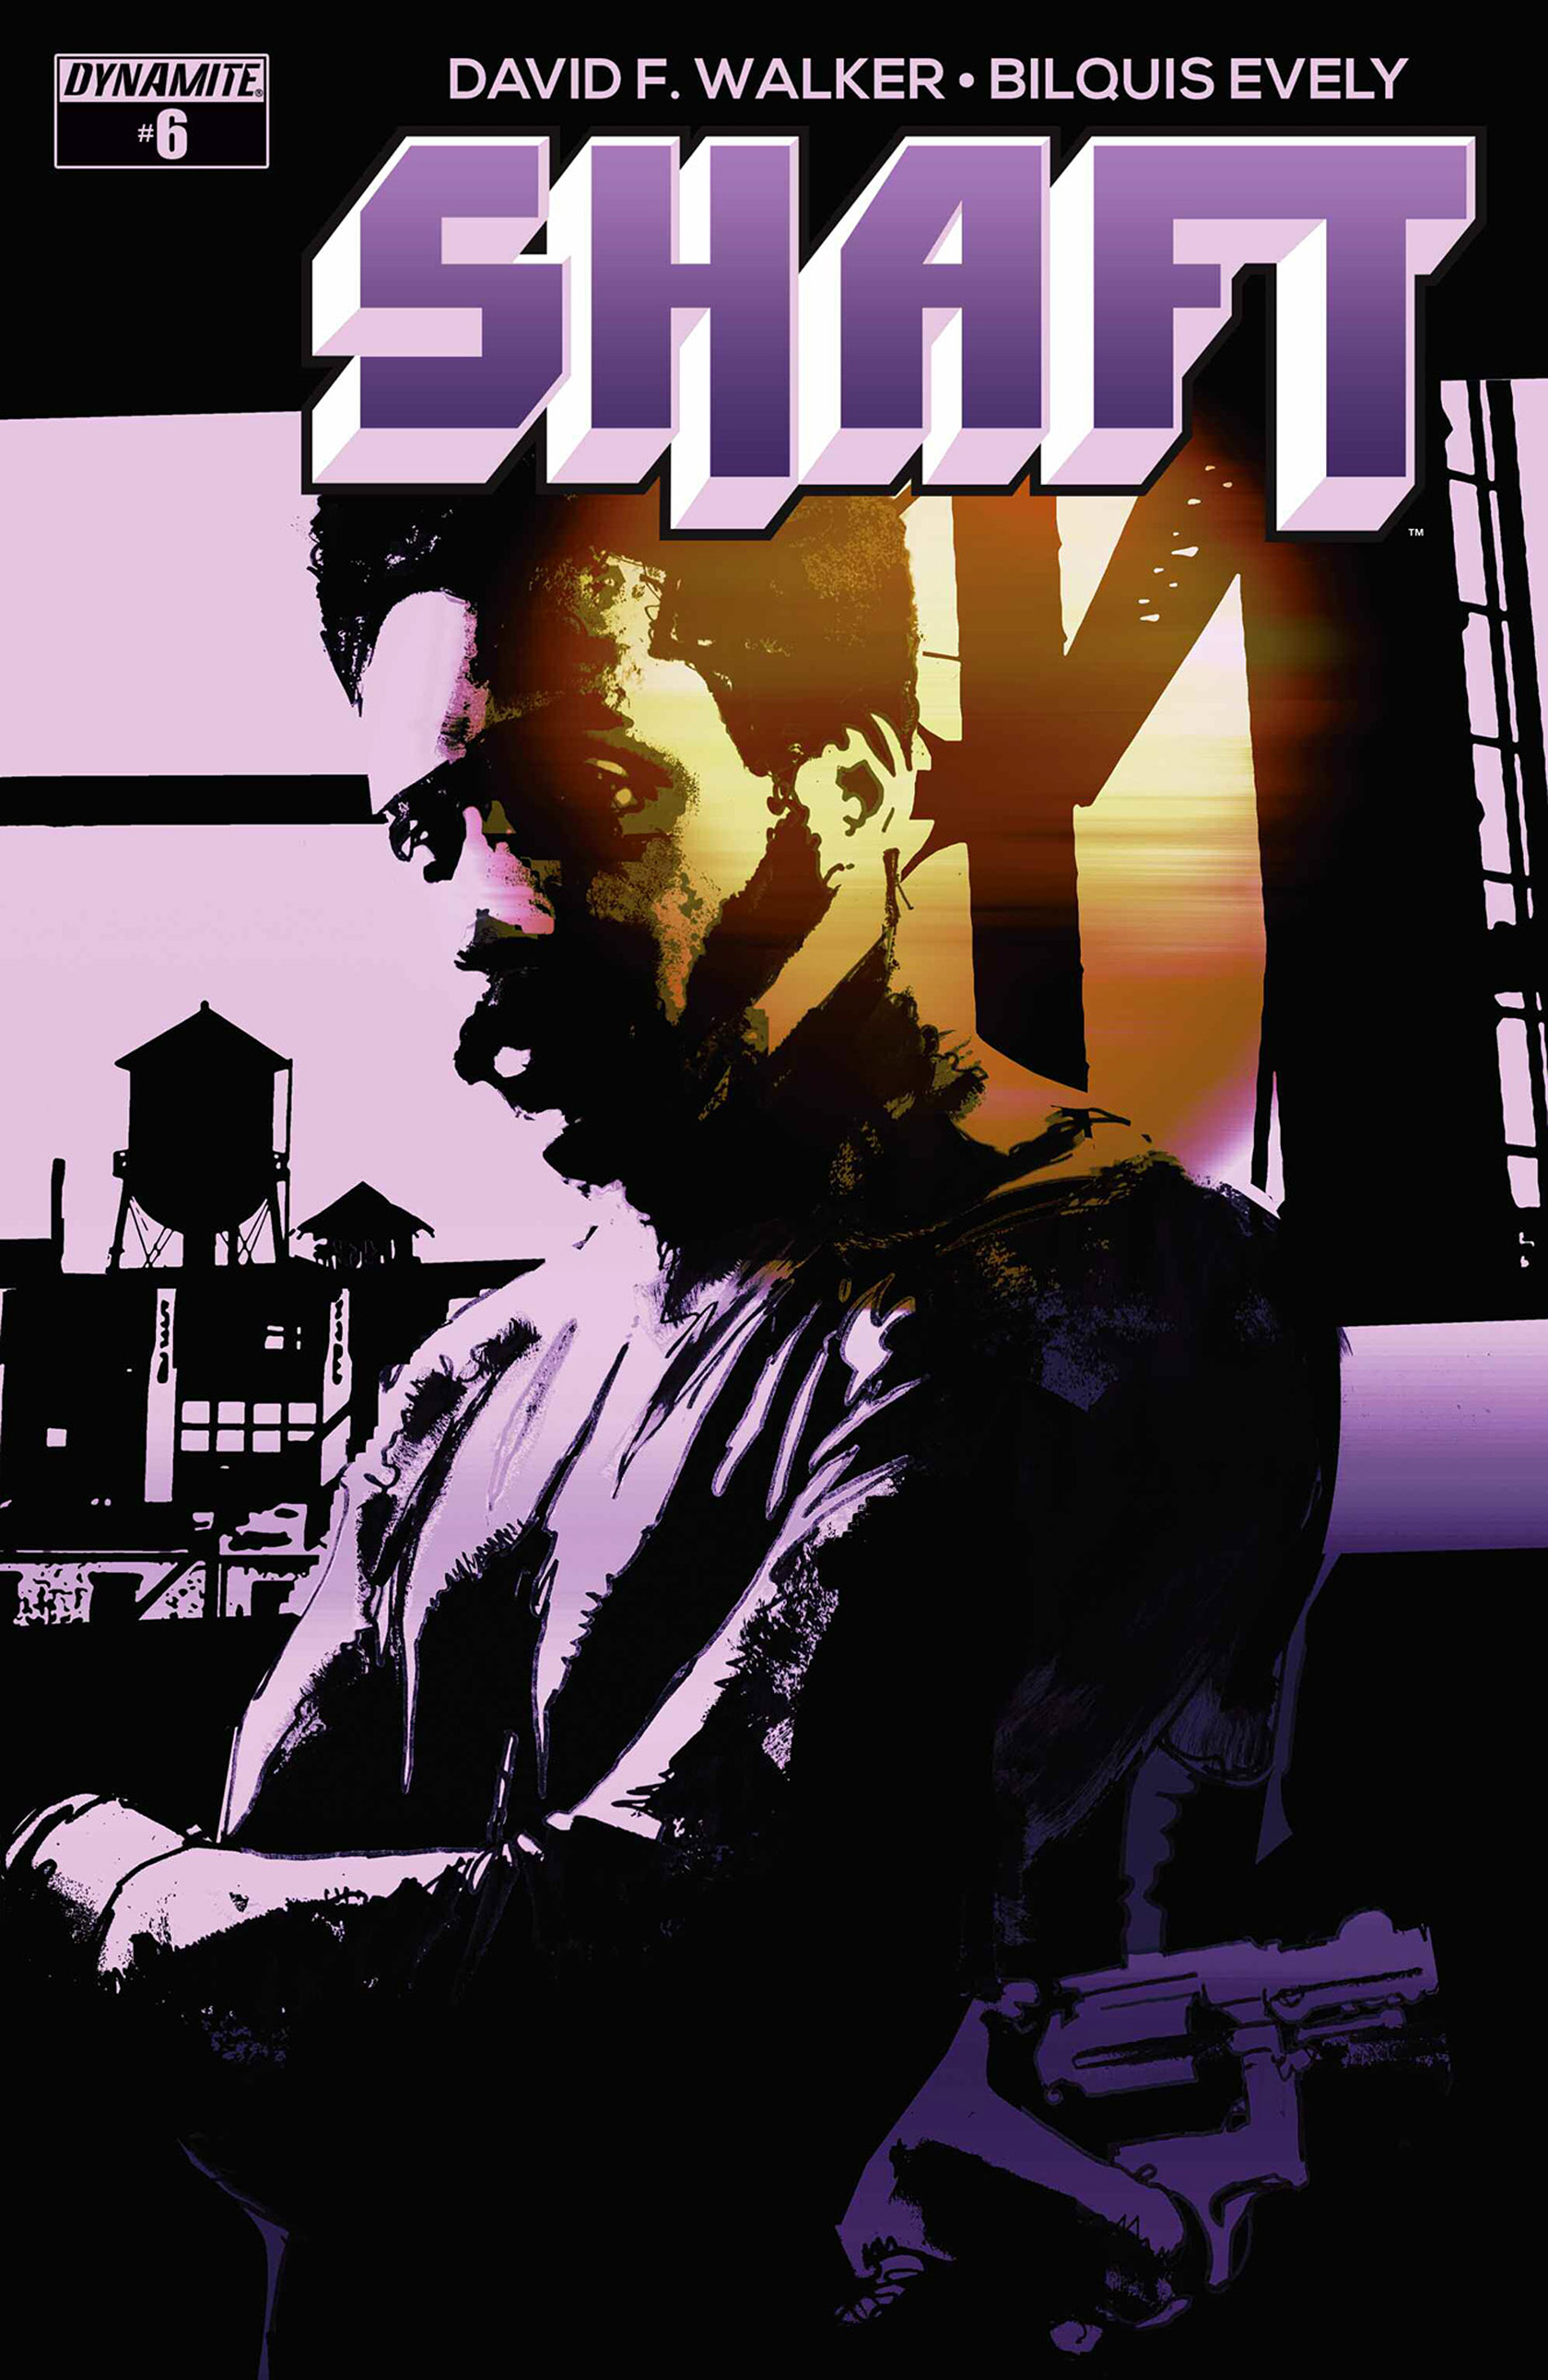 Read online Shaft comic -  Issue #6 - 1